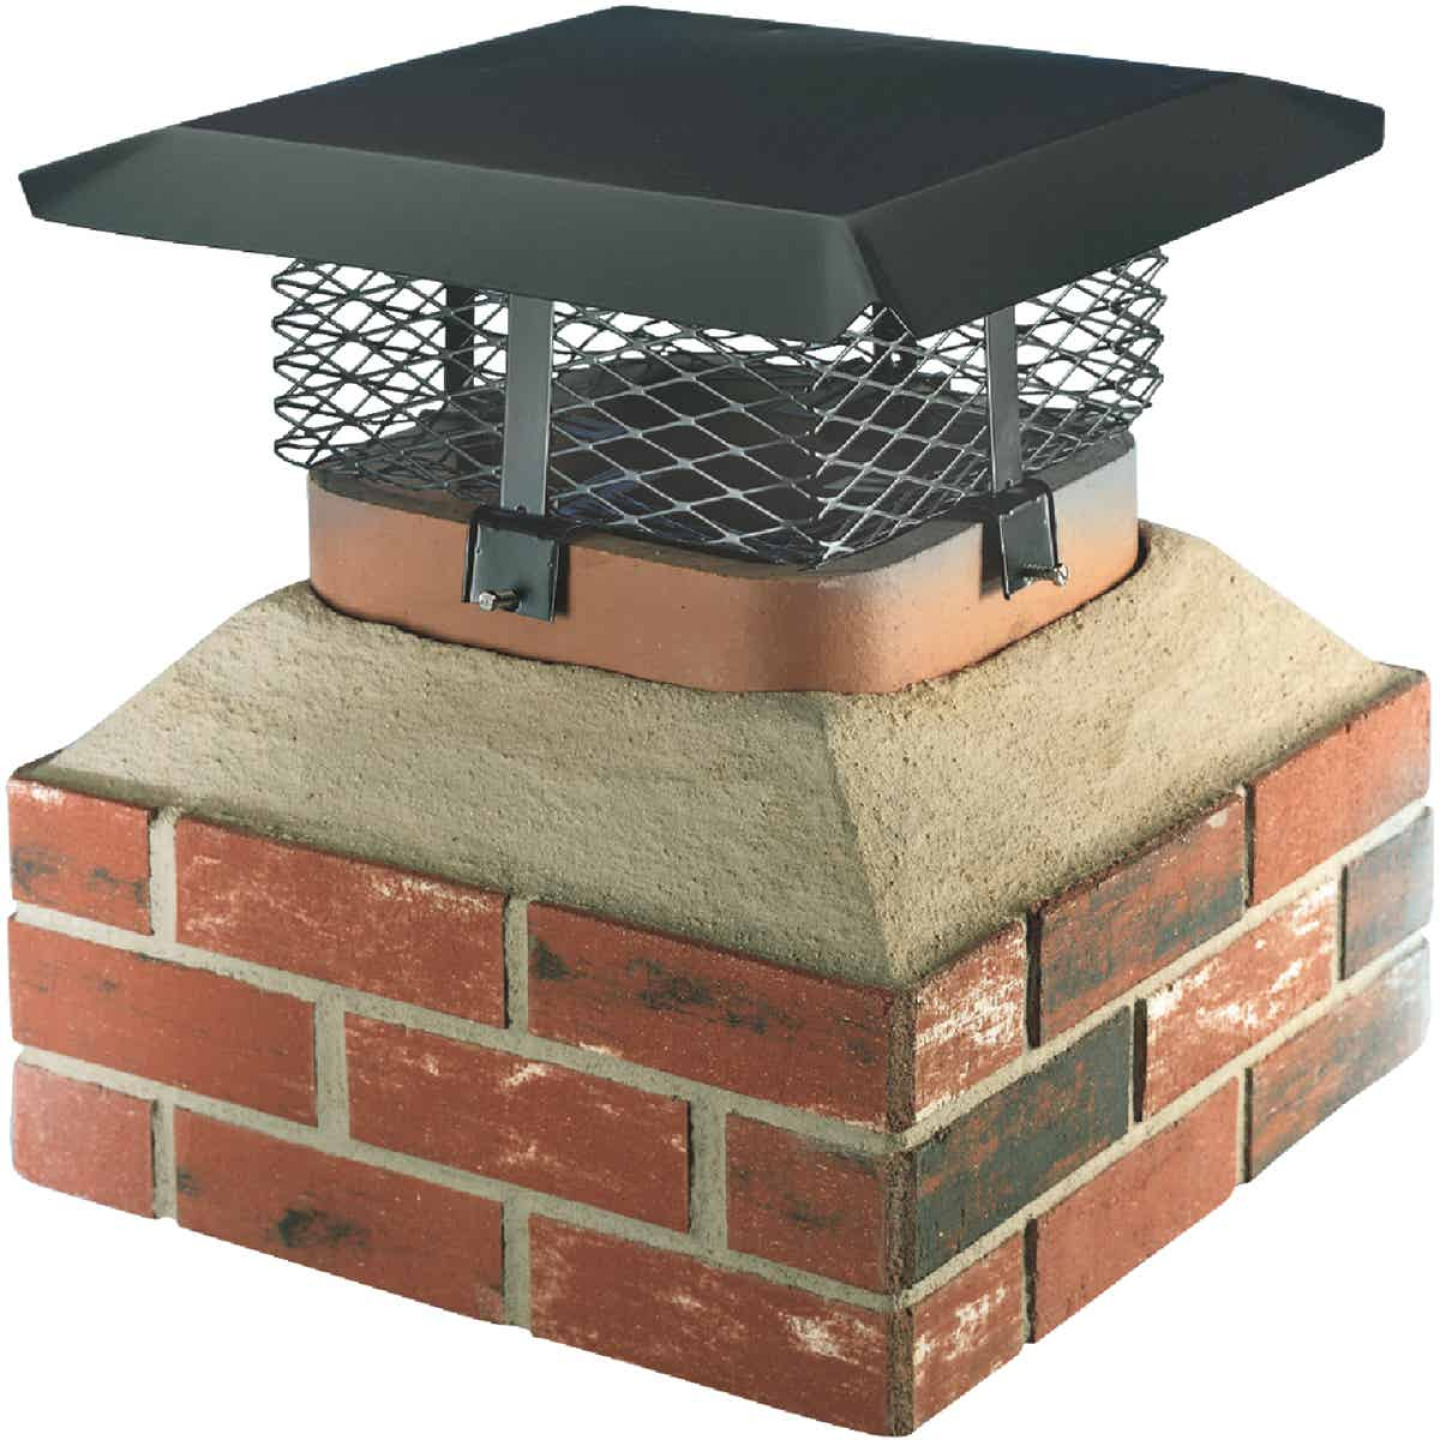 Shelter Adjustable Black Galvanized Steel Single Flue Chimney Cap Image 1